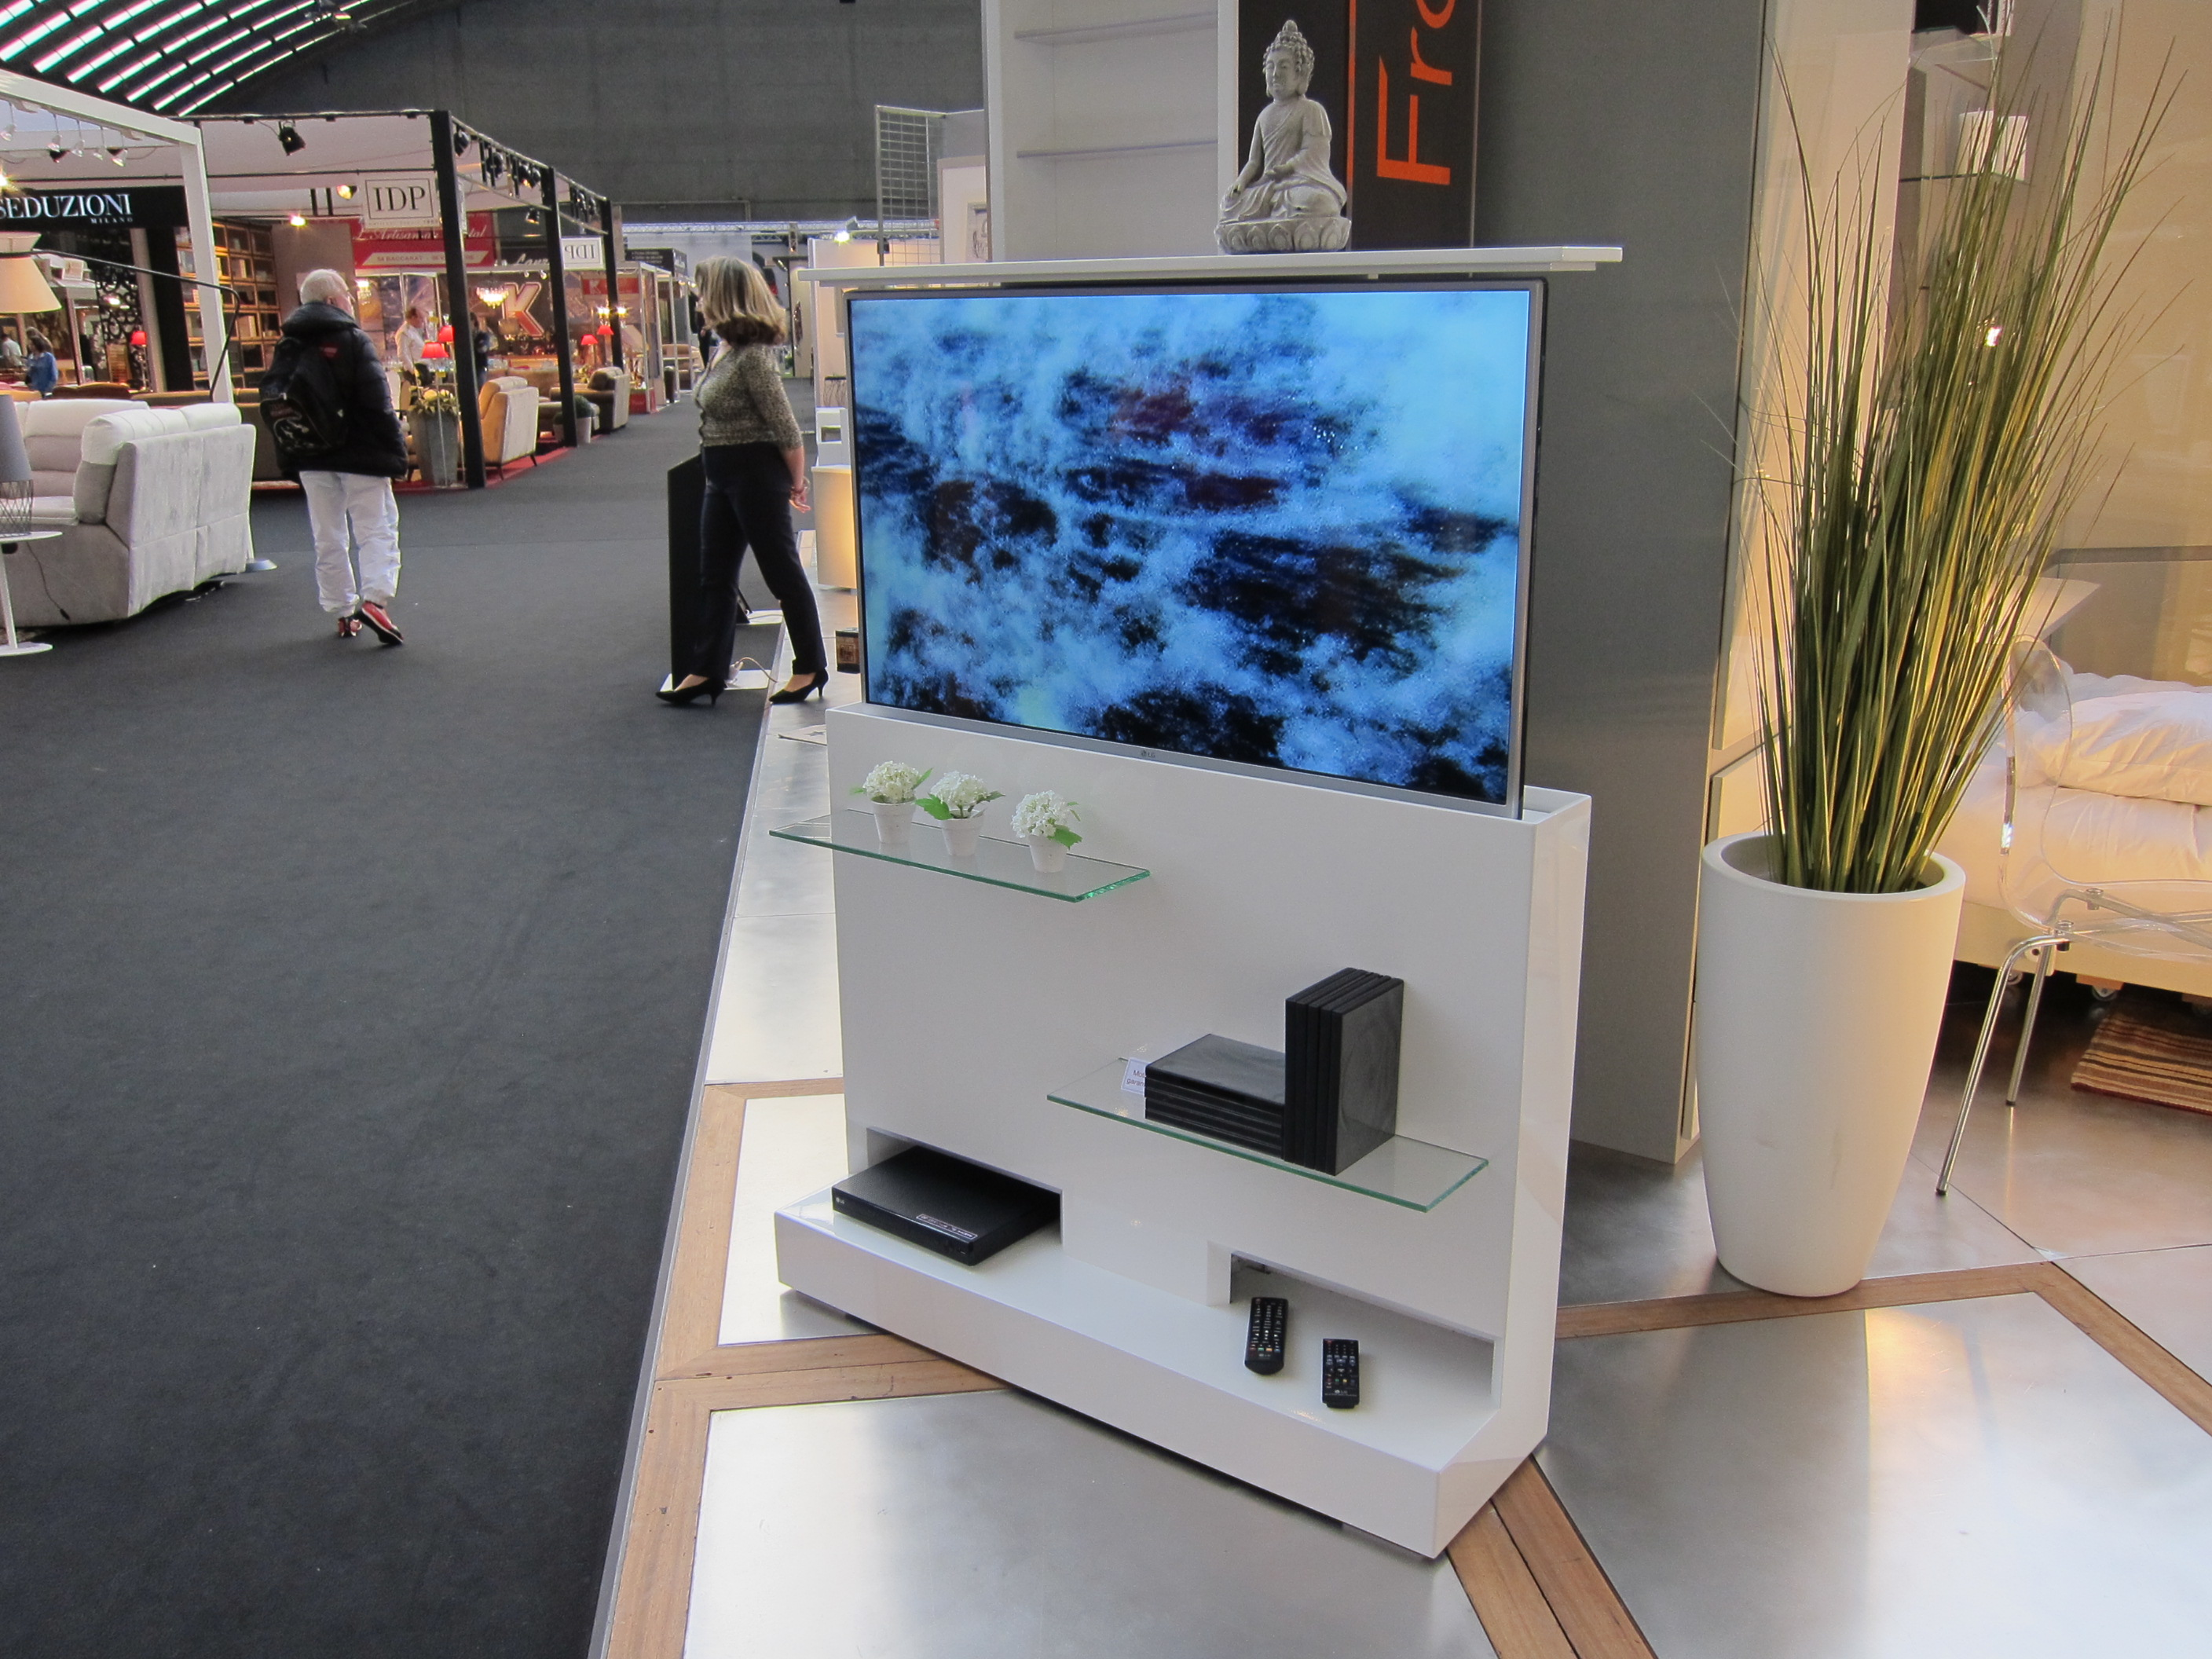 Meuble Television Escamotable - Le Mobilier Gain De Place Fran Ois Desile[mjhdah]https://www.cobra.fr/media/catalog/product/m/2/m2p2n1gl_4.png